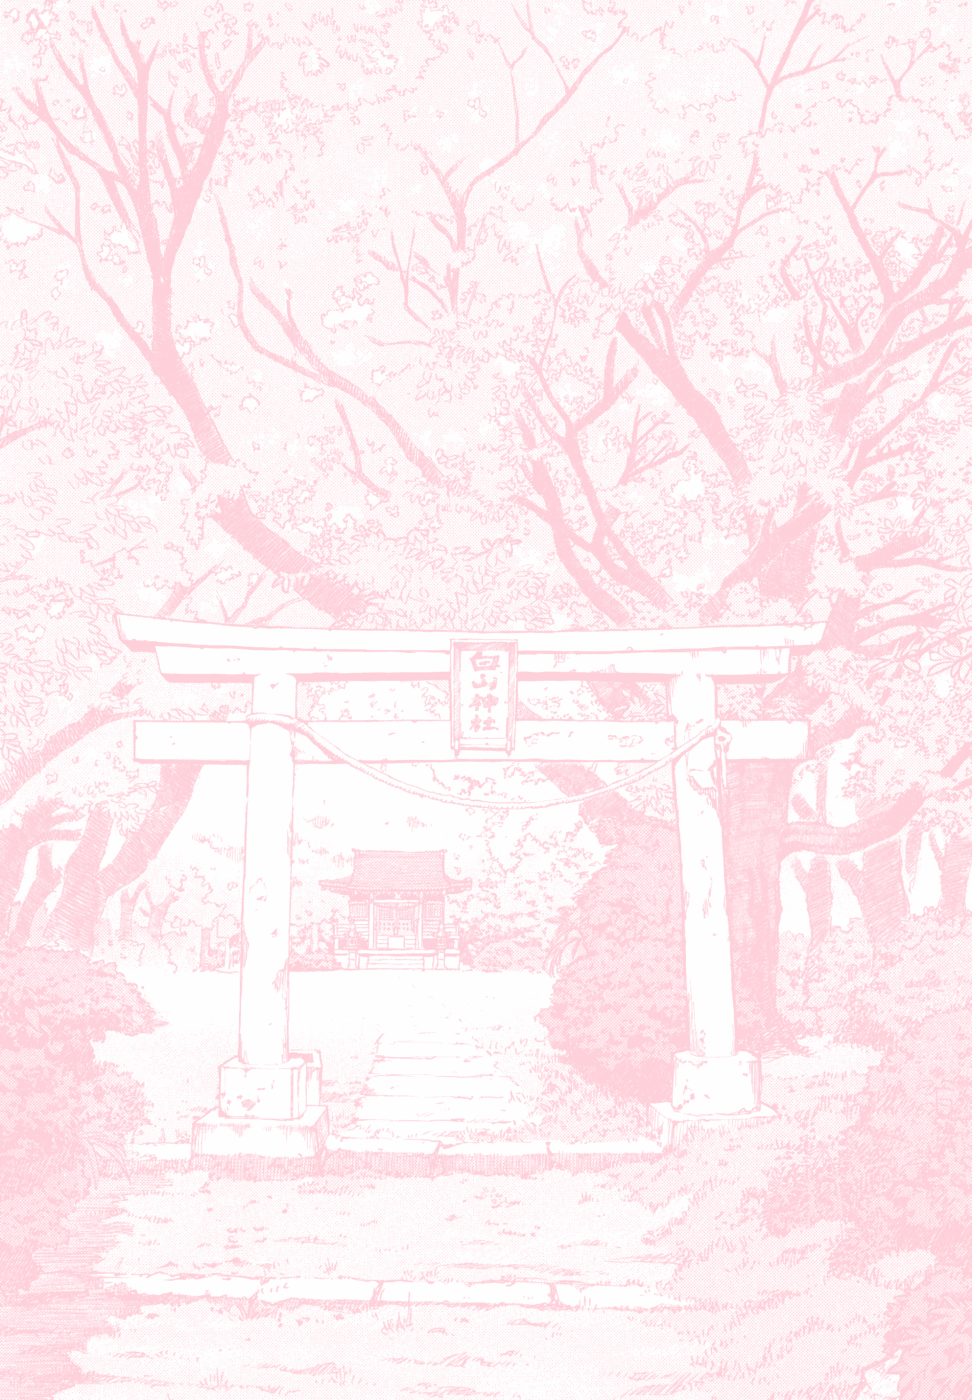 Pink Anime Aesthetic Wallpapers